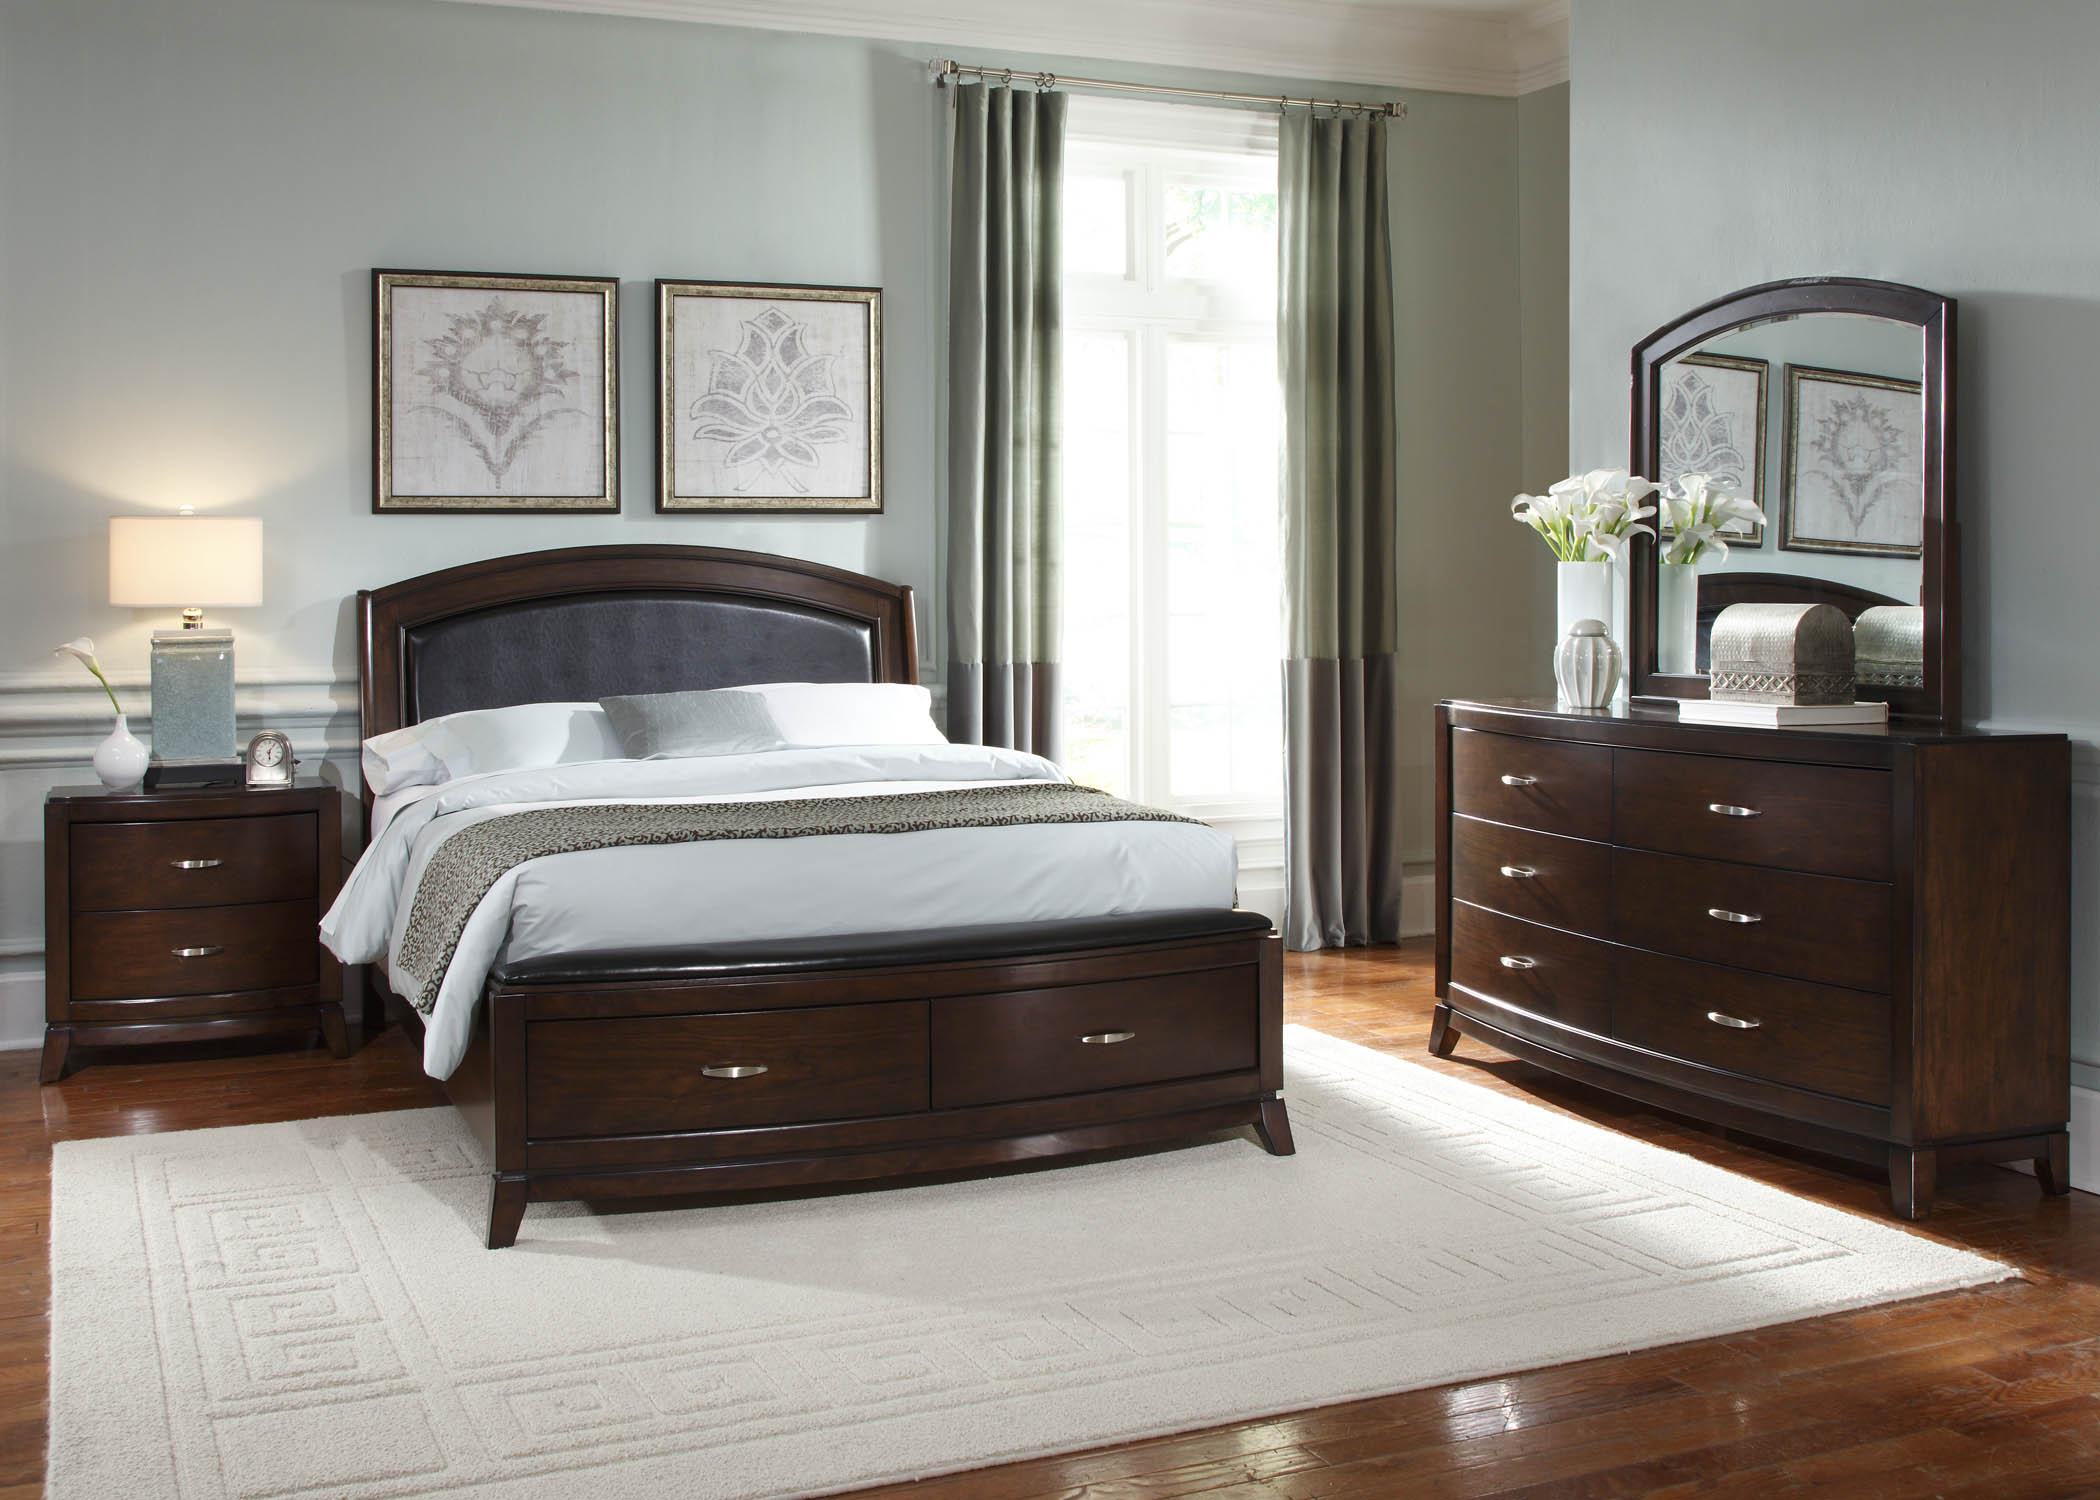 Liberty Furniture Avalon 4PC King Storage Bedroom Set - Item Number: 505-BR-KSBDMN